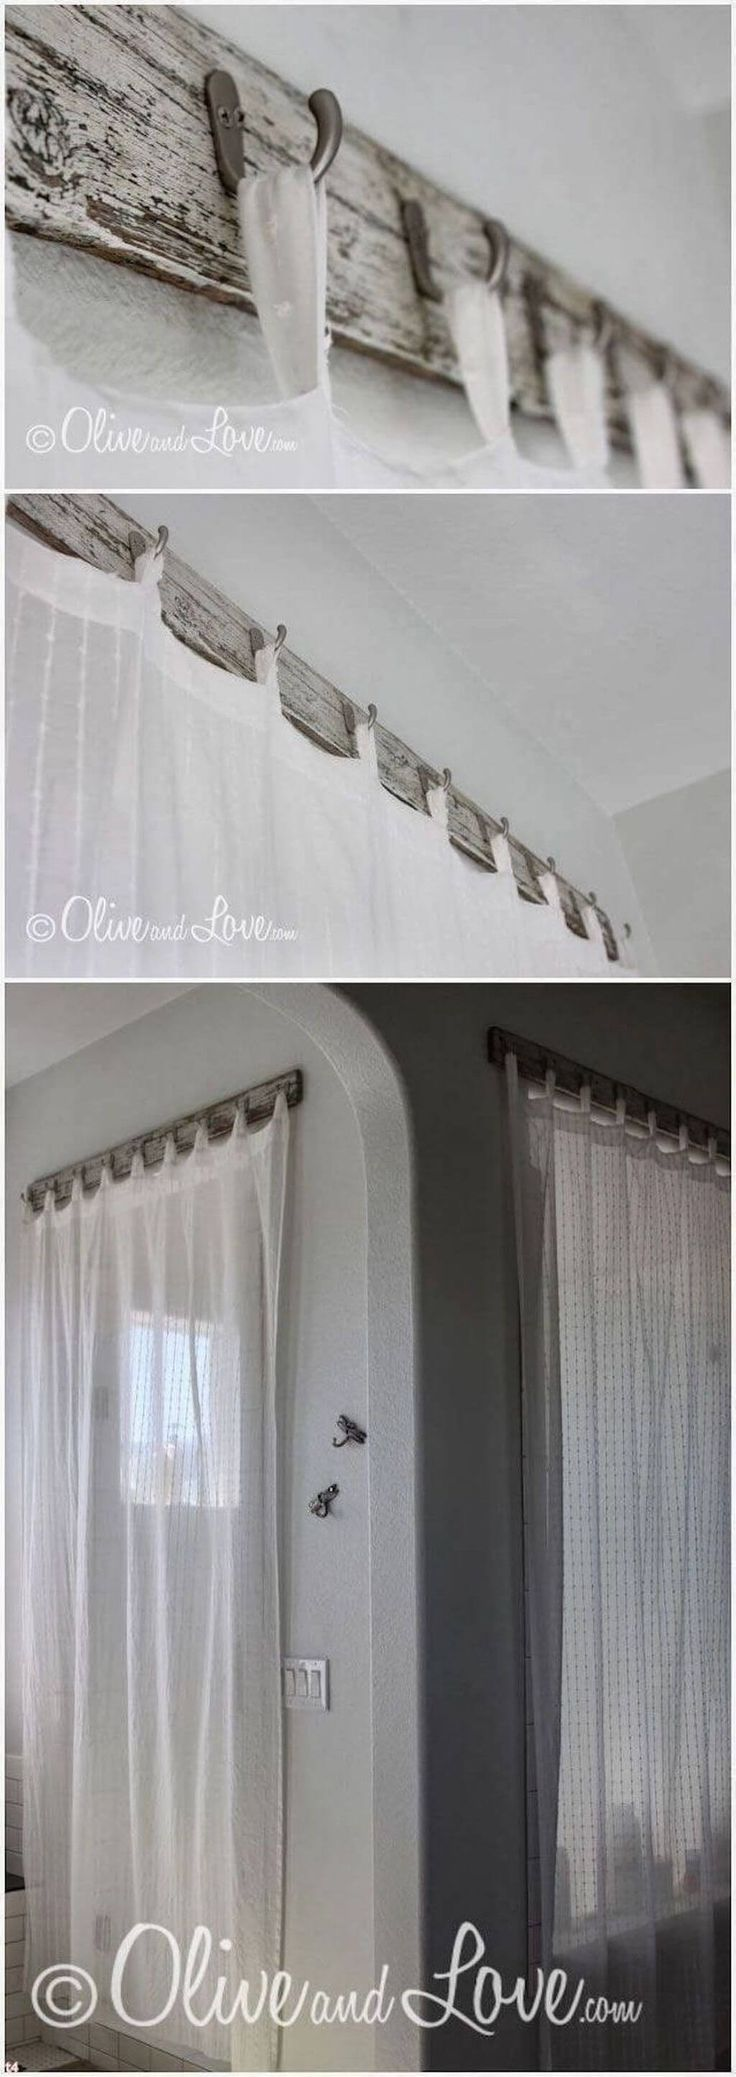 Ceiling mount curtains quotes - 32 Creative Diy Wood Craft Projects You Should Try Hanging Curtains